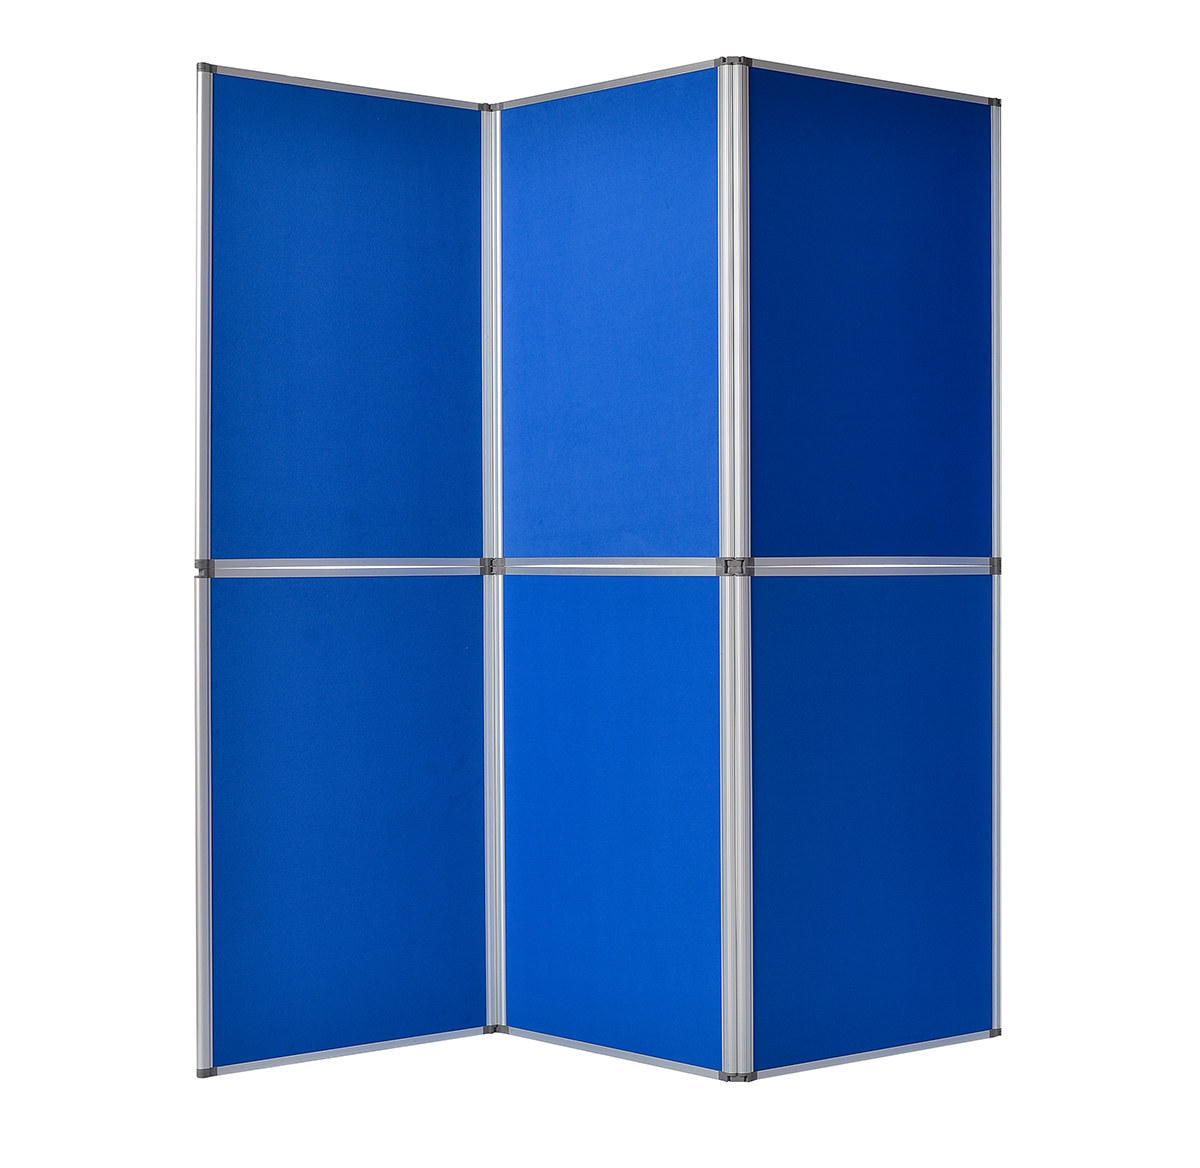 Bi-Office 6 Panel Gallery Exhibition System